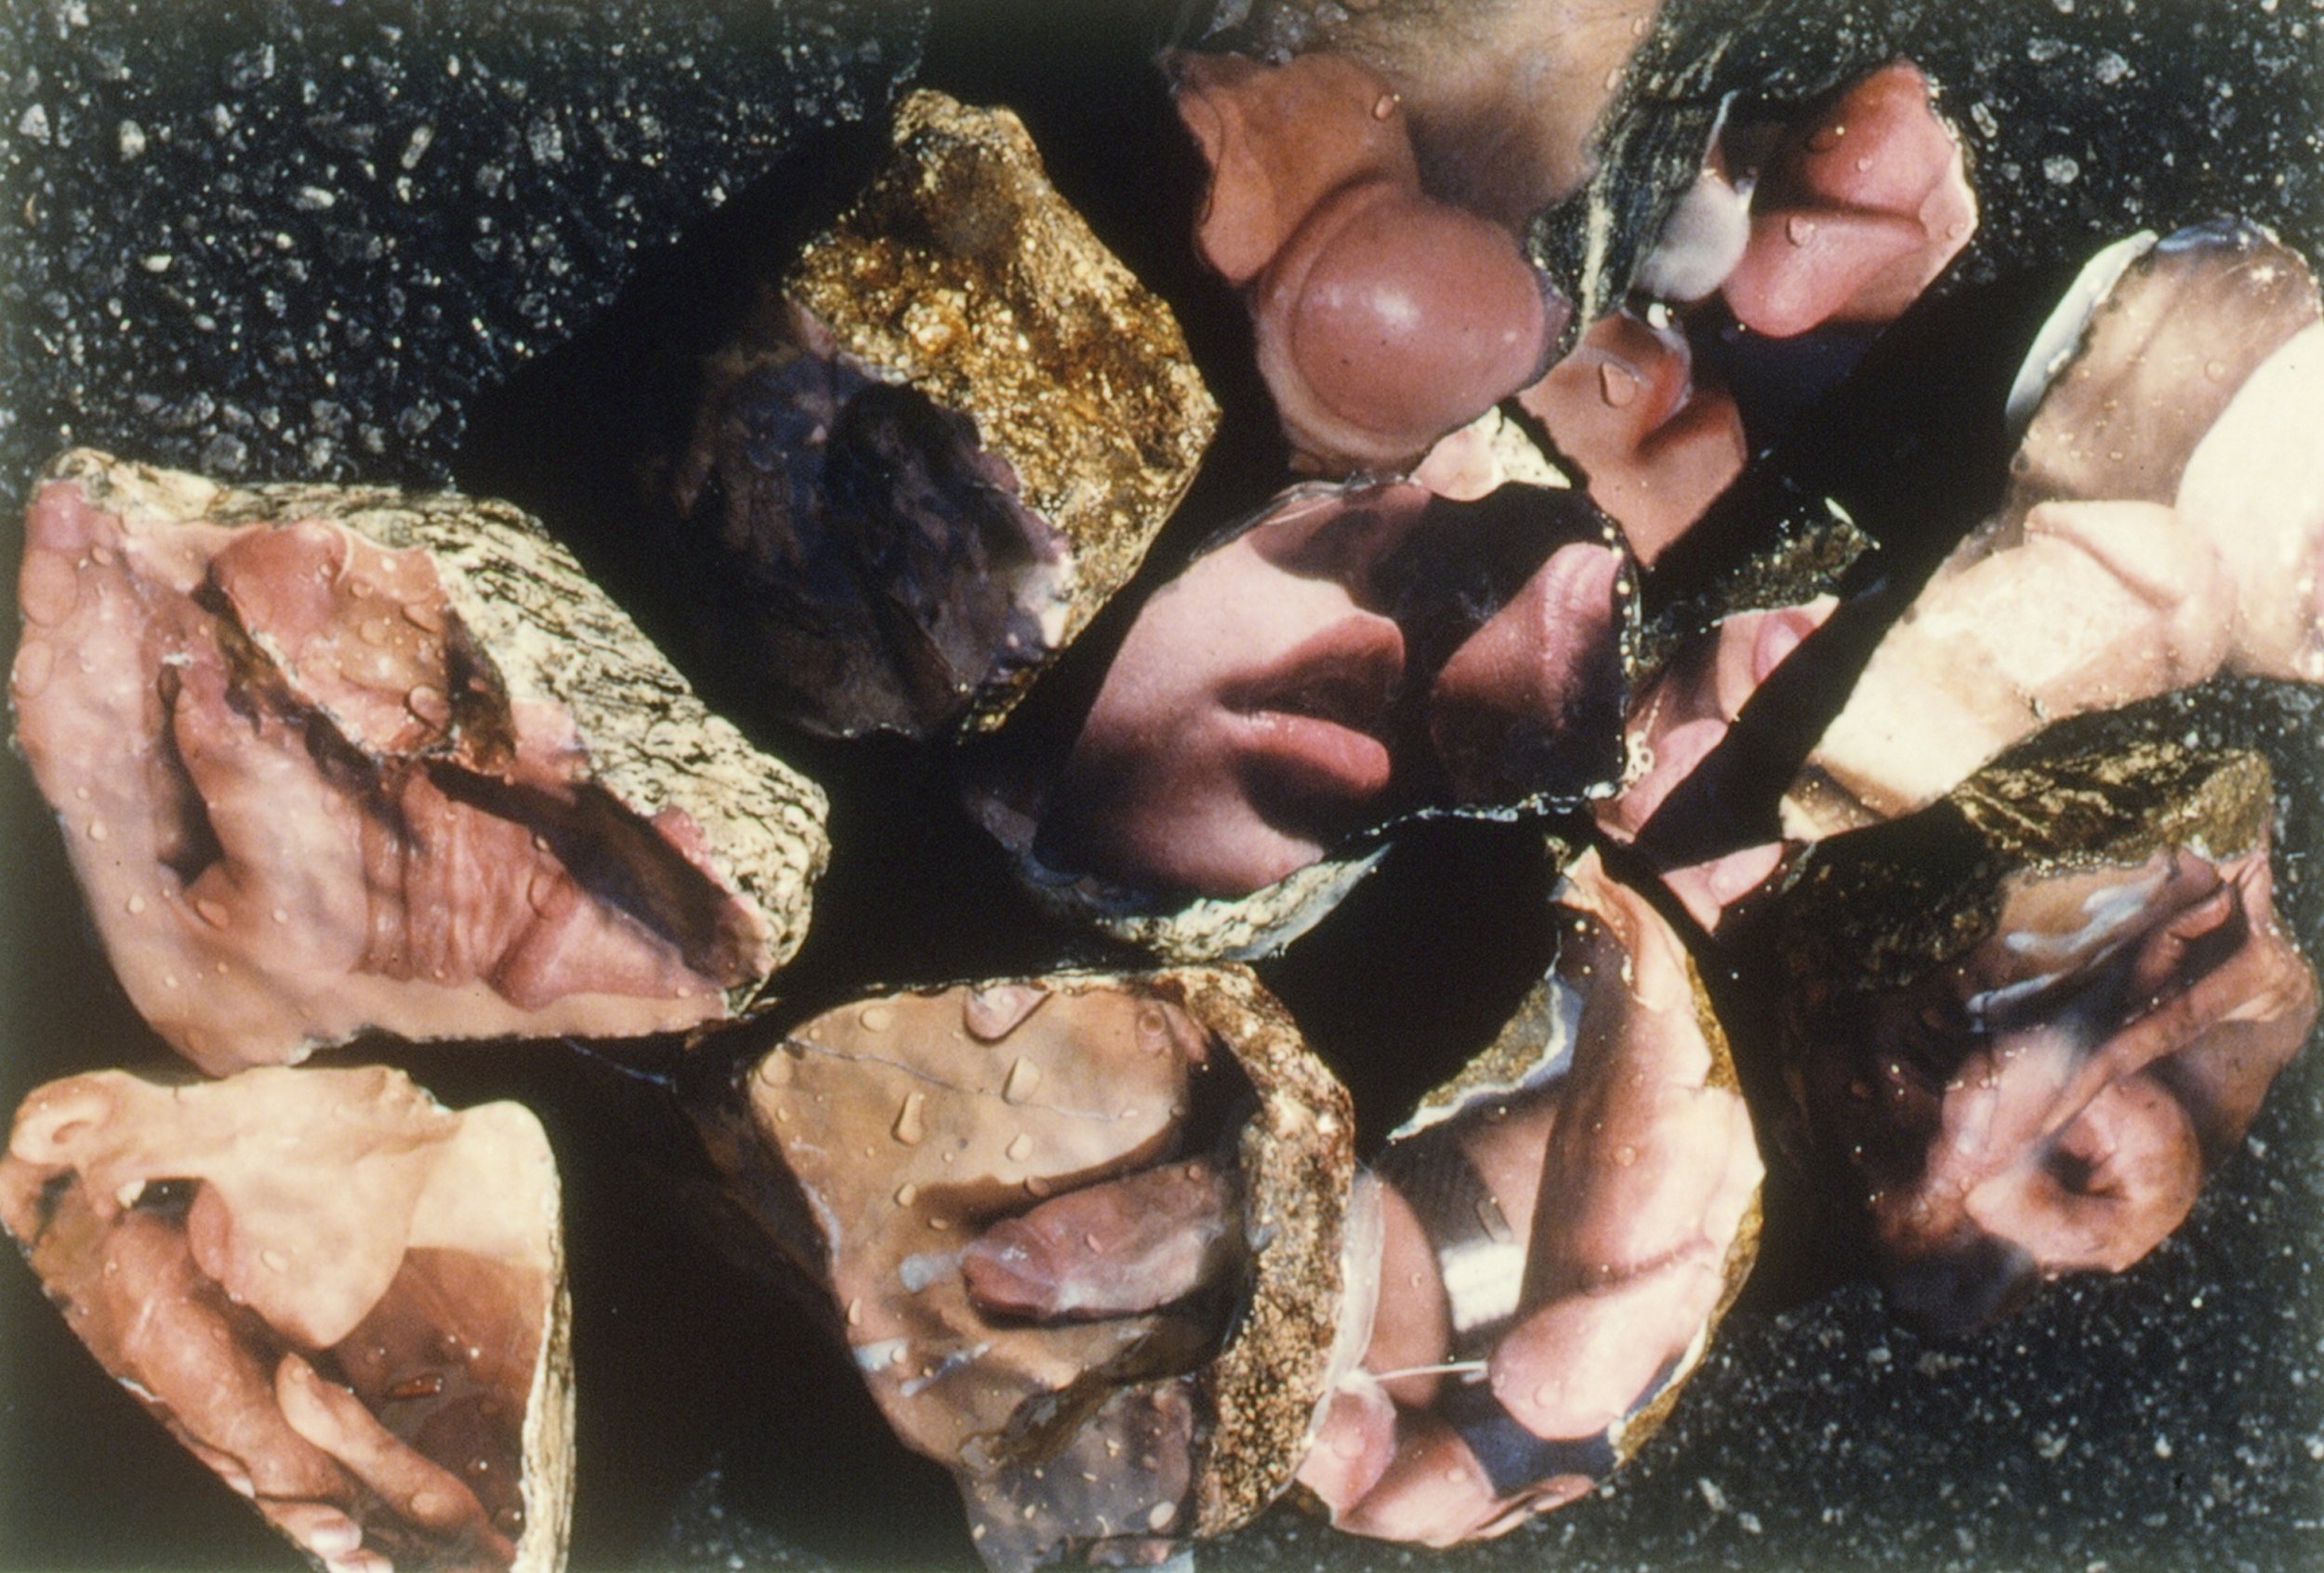 Aura Rosenberg,  Untitled (Dialectical Porn Rocks),  1989-1993, C-print, 16 x 20 in.